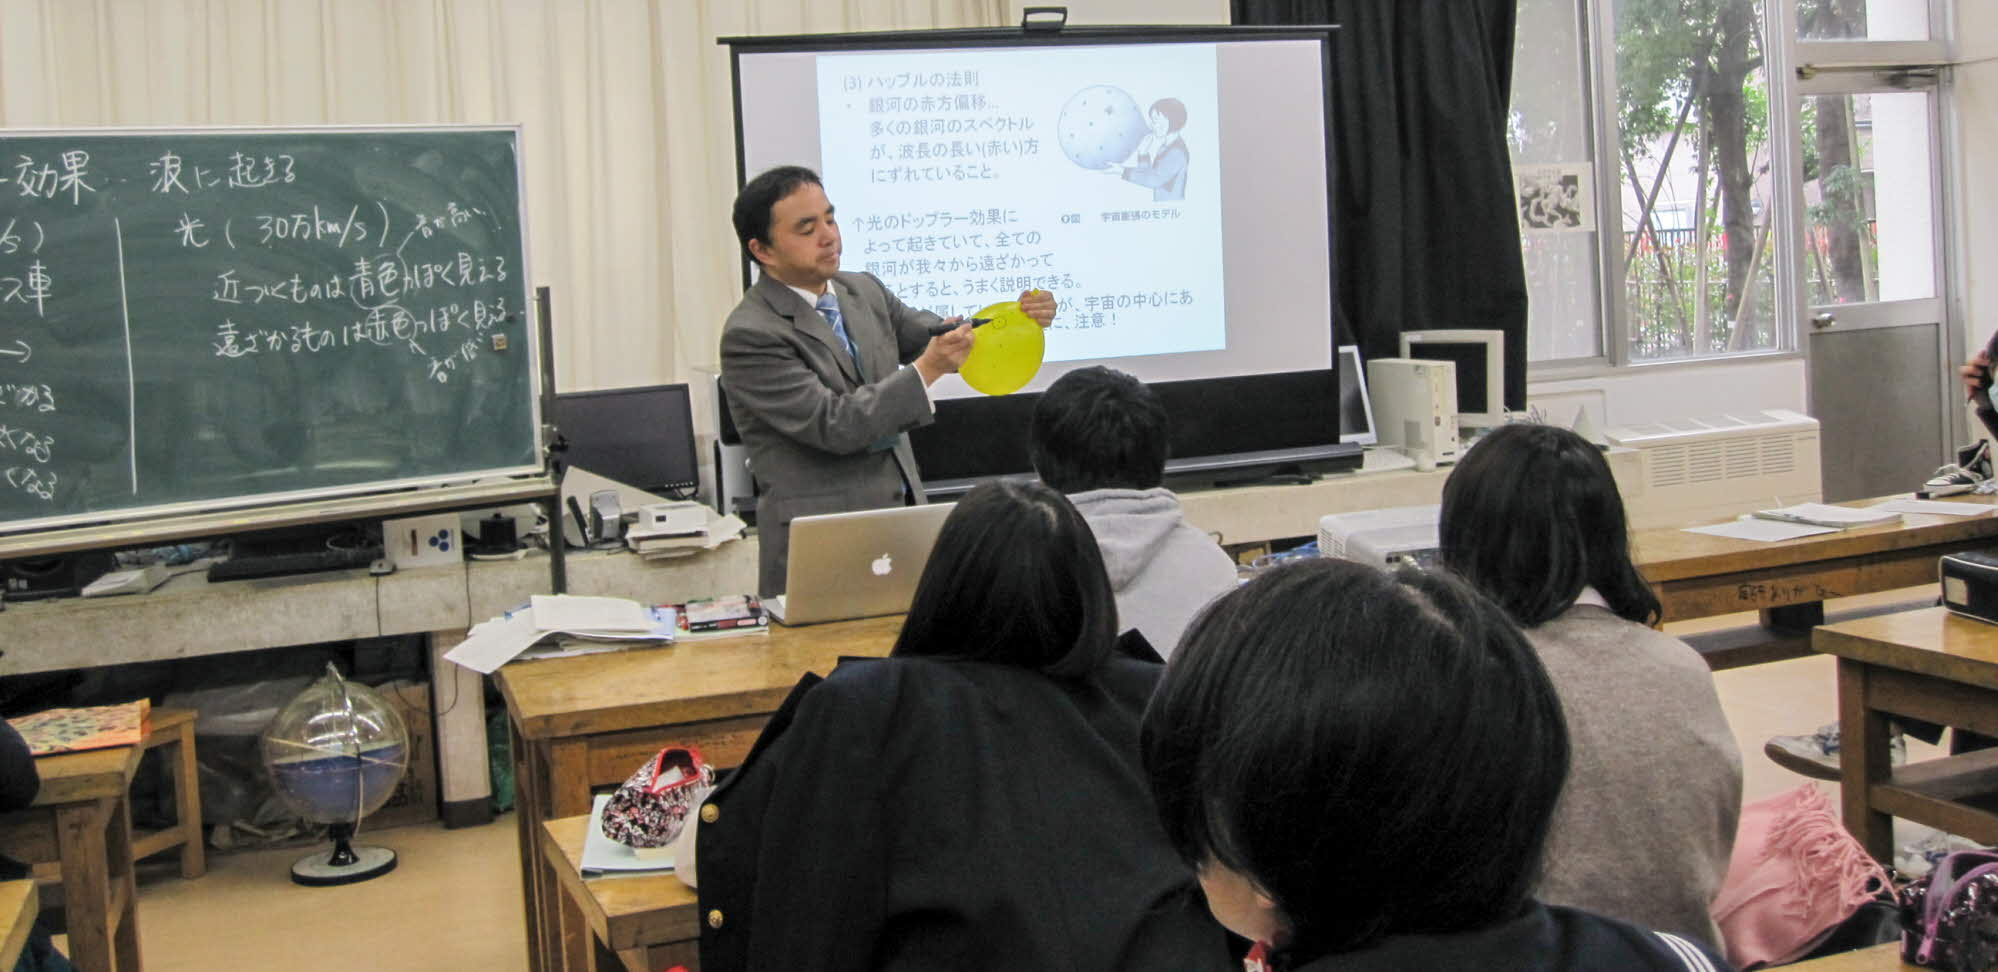 teaching in classroom